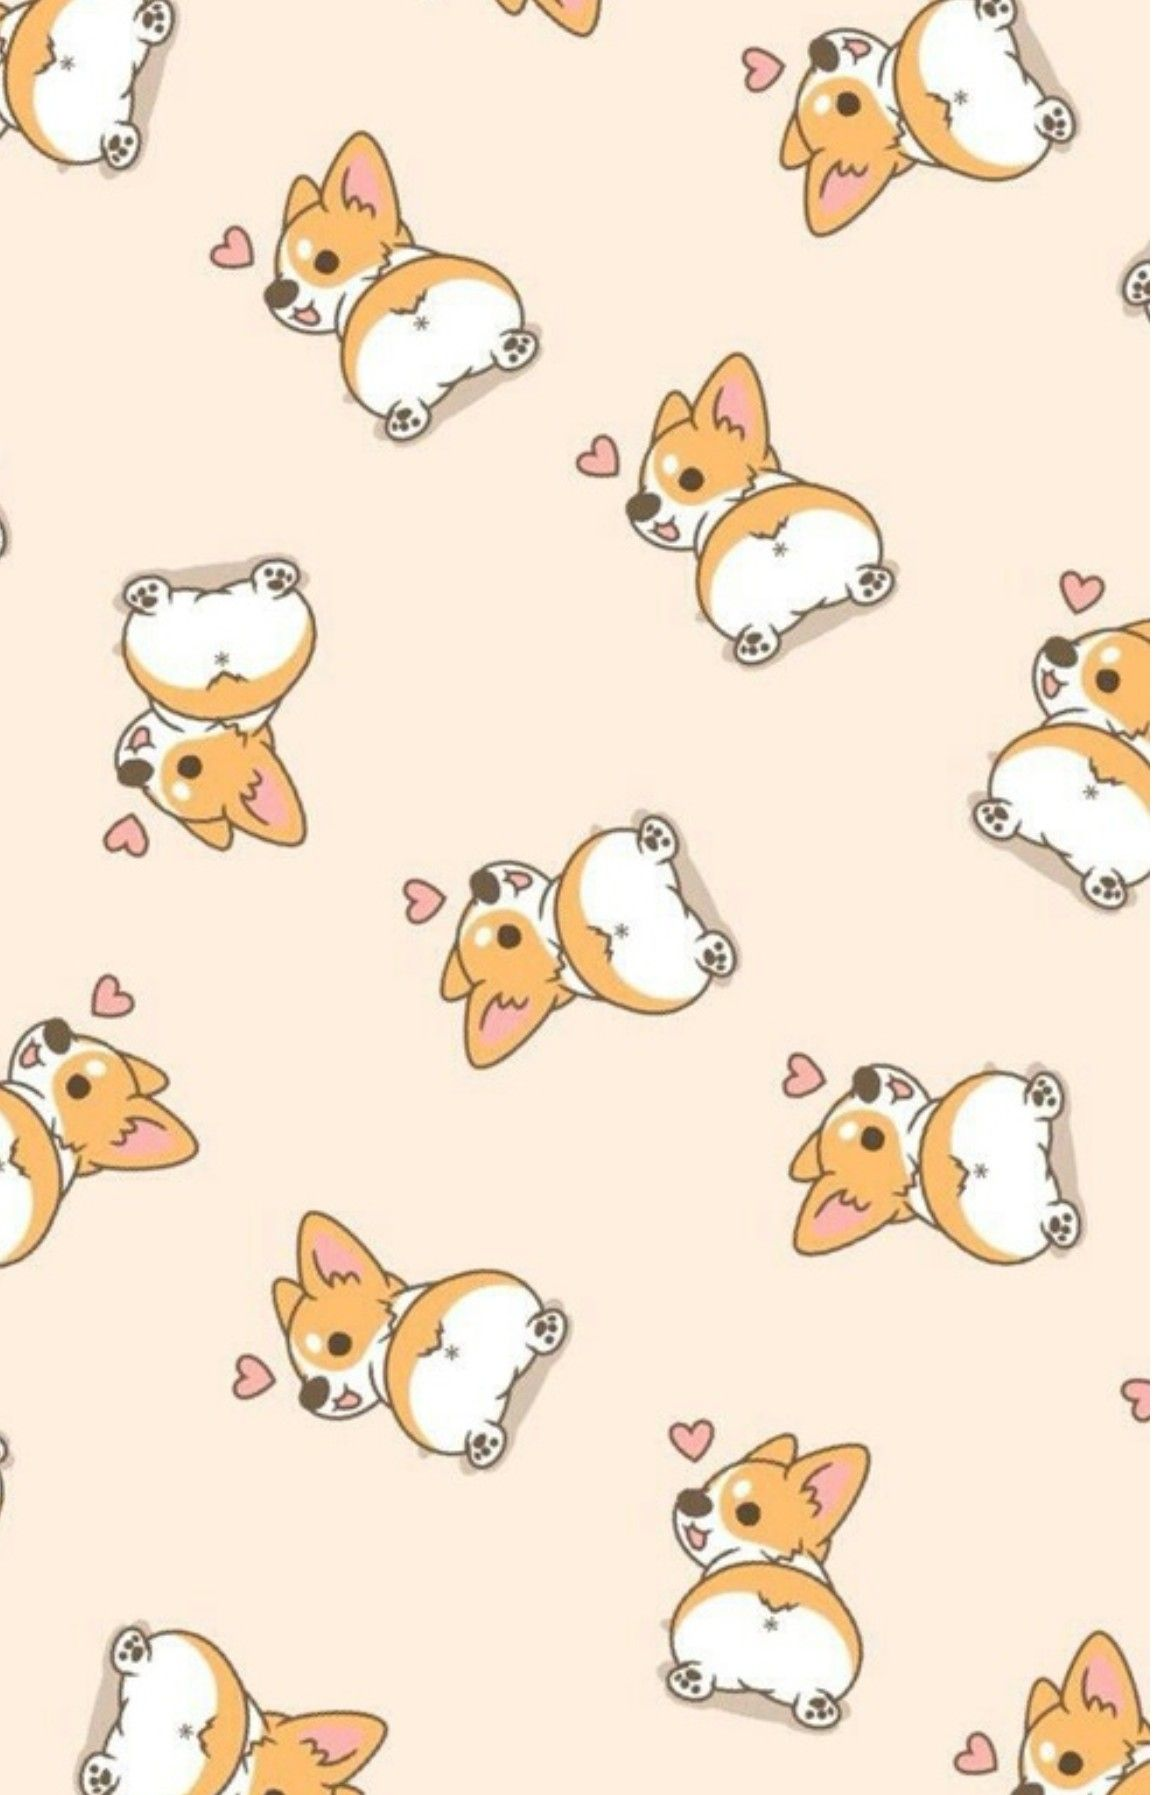 Pin By Rachel Chrystine On Wallpapers Dog Wallpaper Iphone Corgi Wallpaper Corgi Wallpaper Iphone